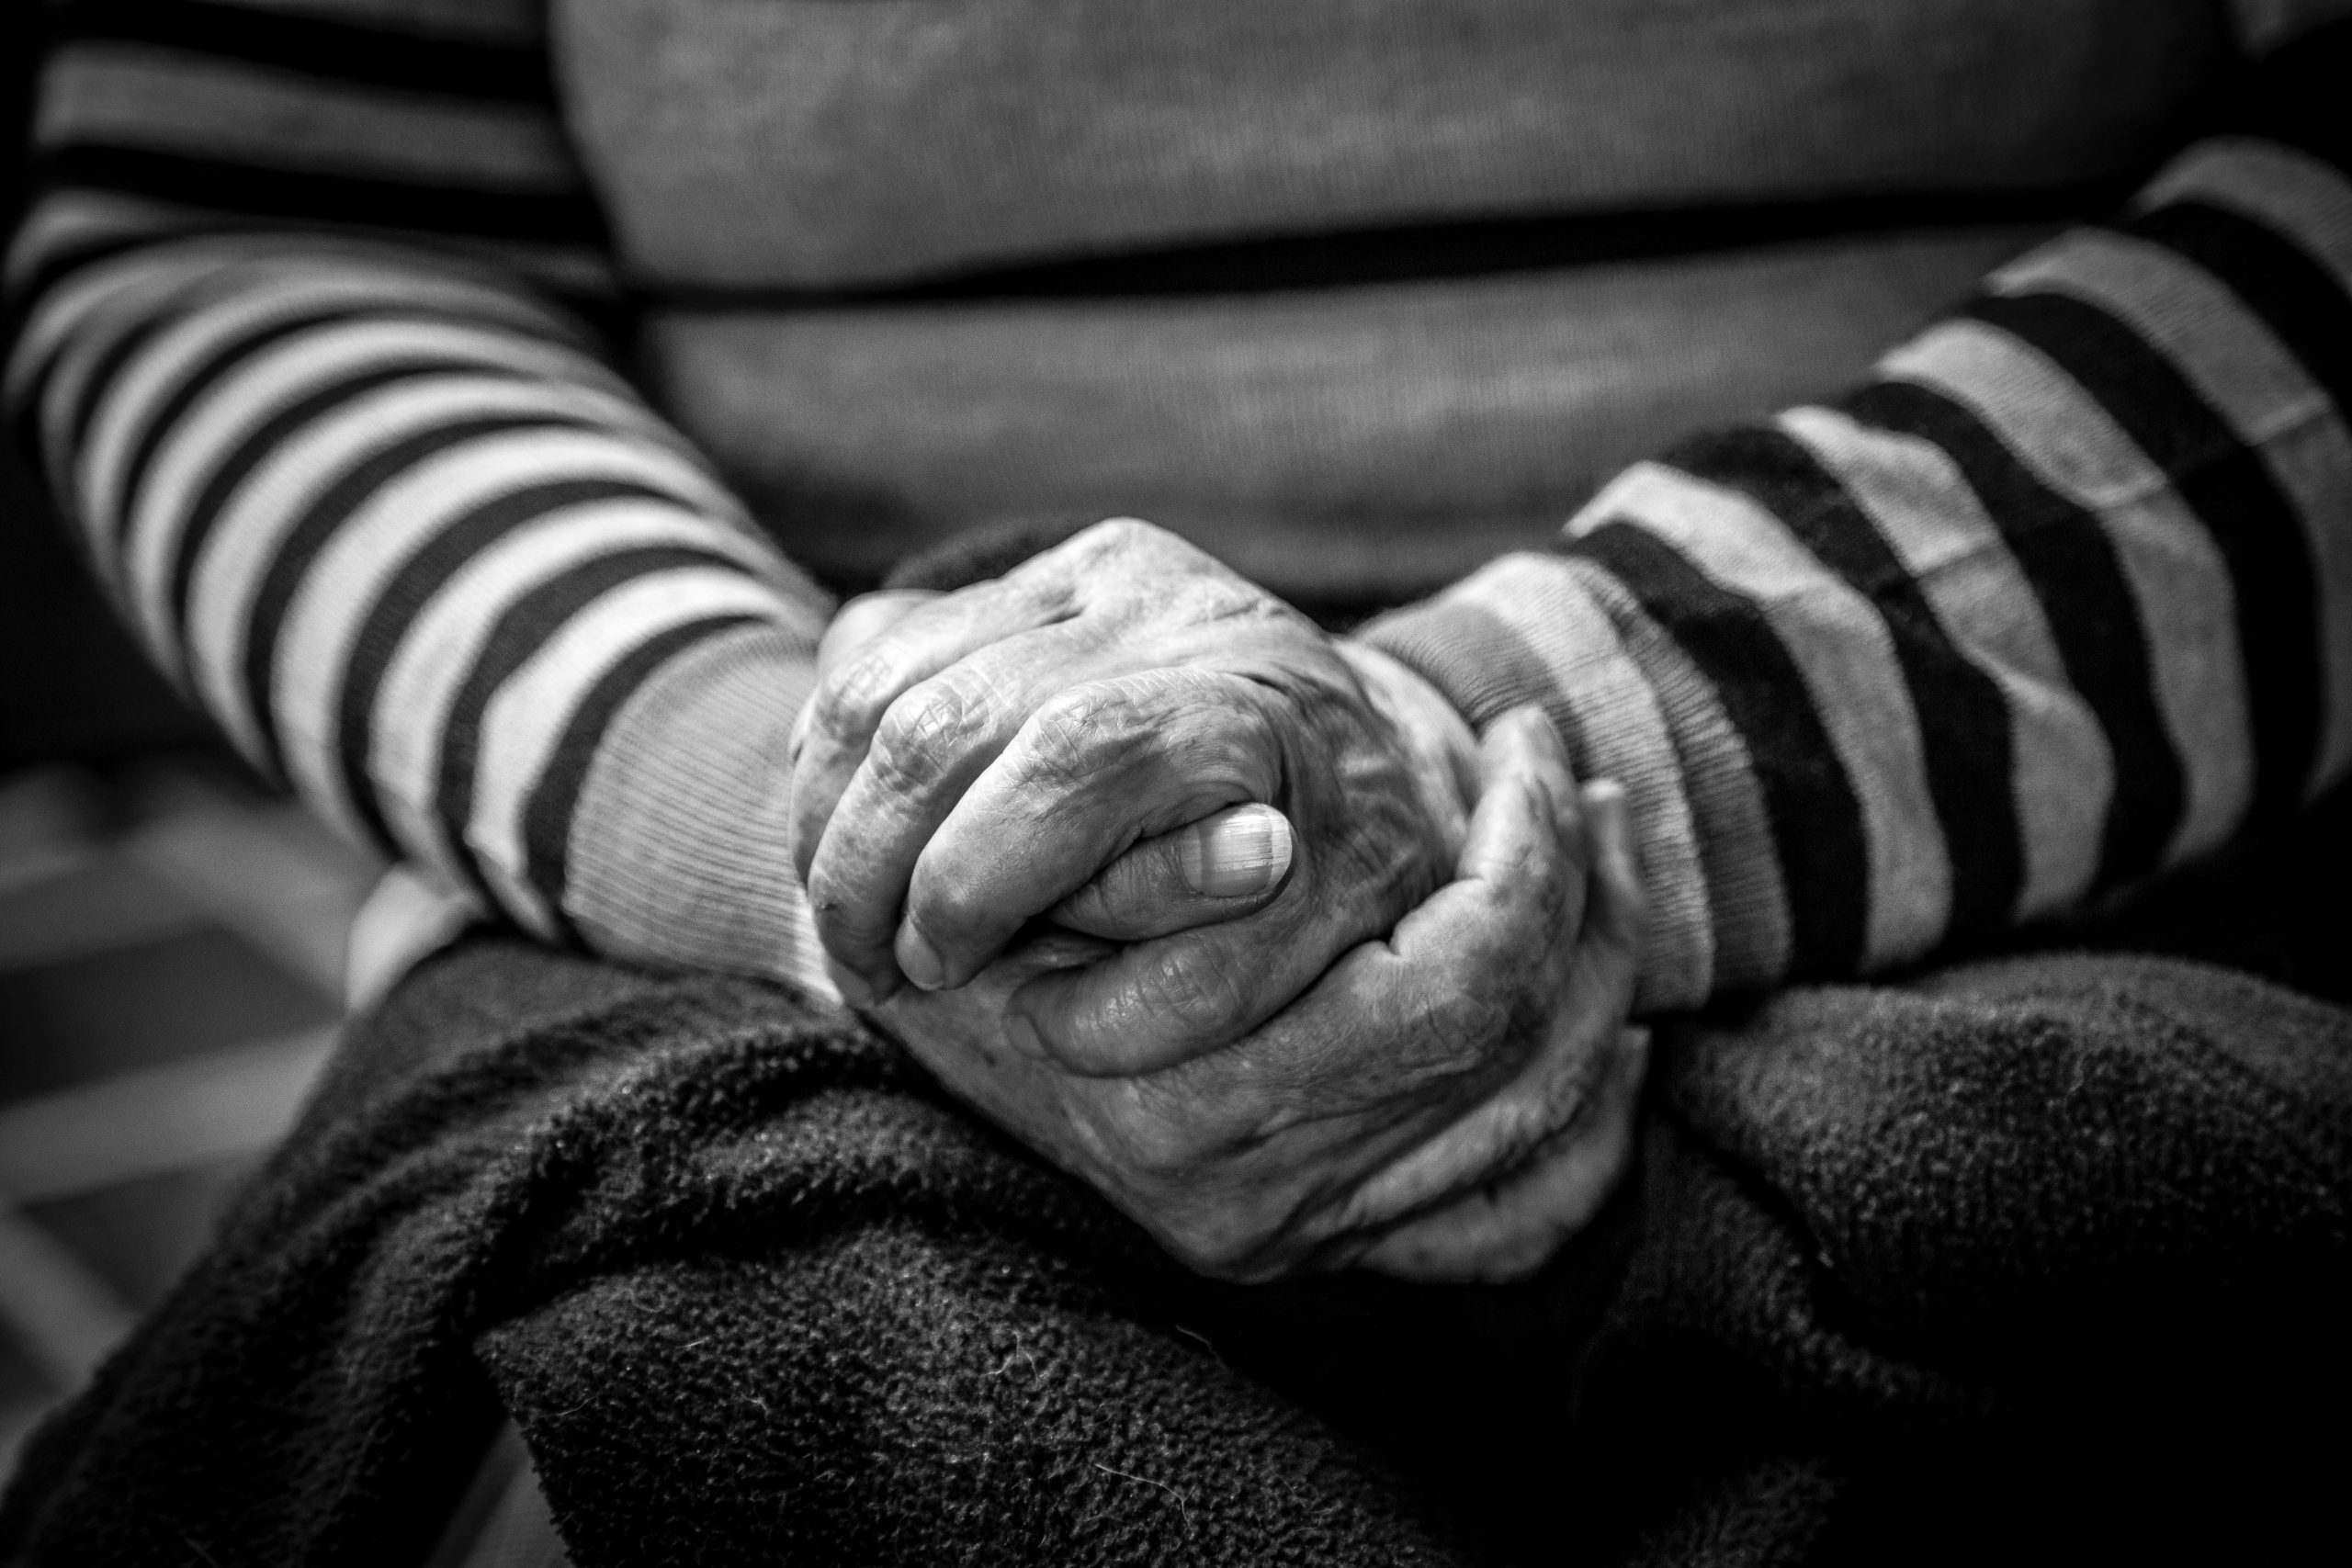 How AI Can Help Diagnose Alzheimer's